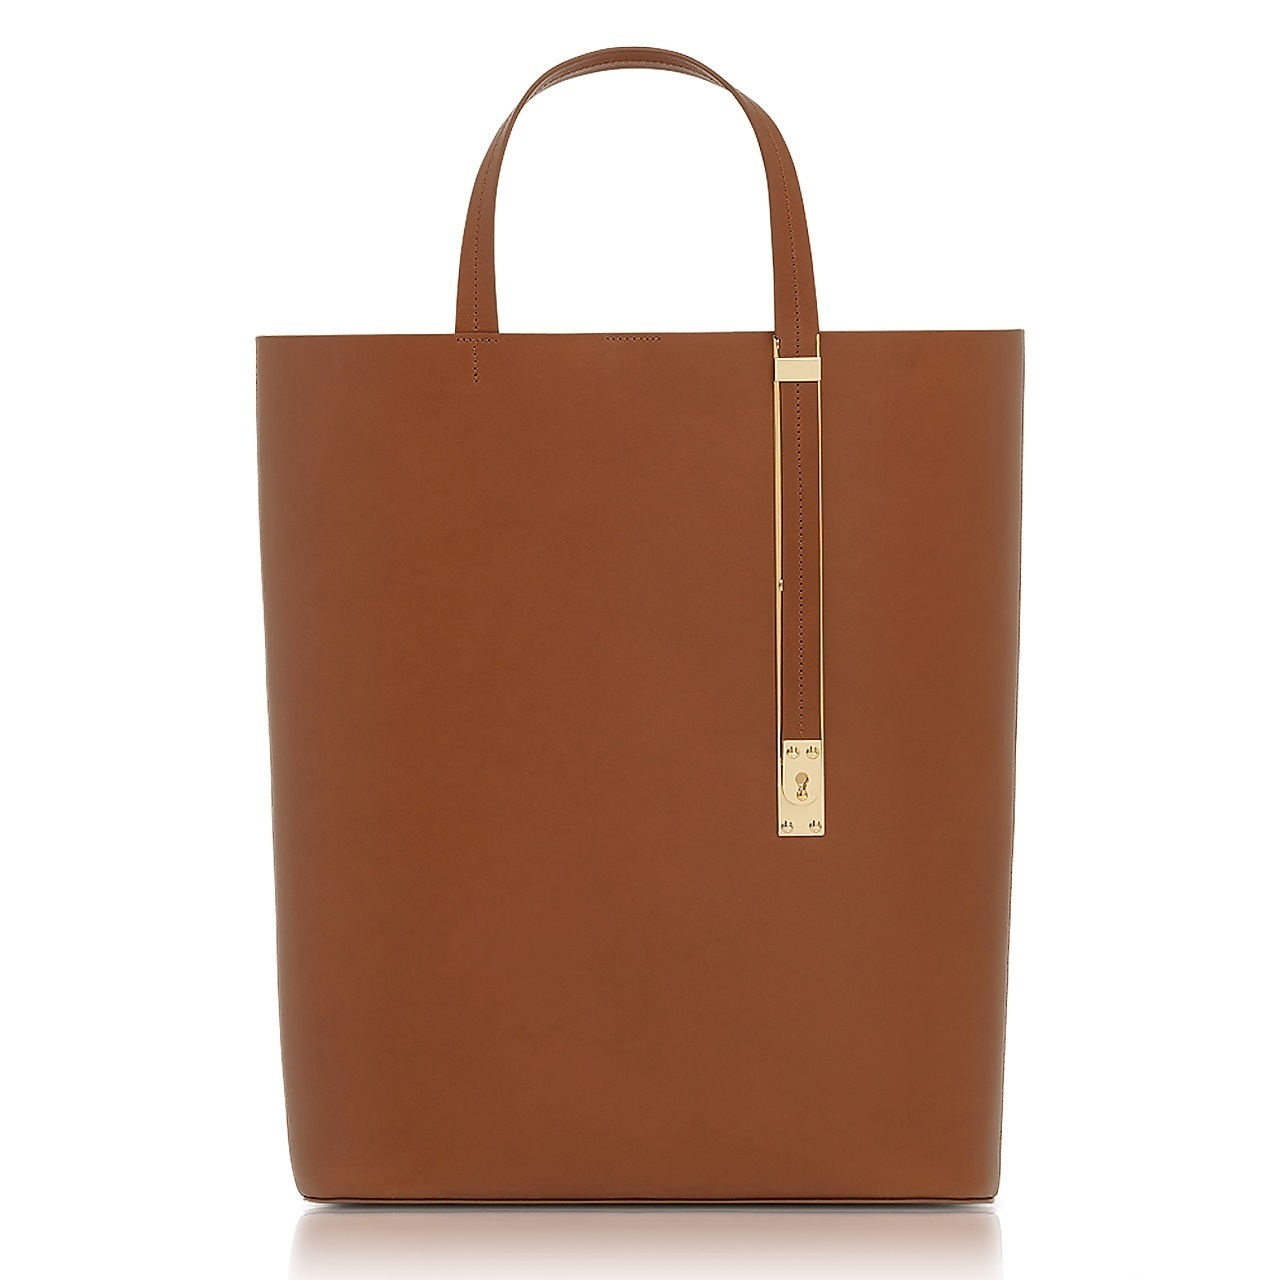 ★SOPHIE HULME★ Tan East West Exchange トートバッグ 関税込